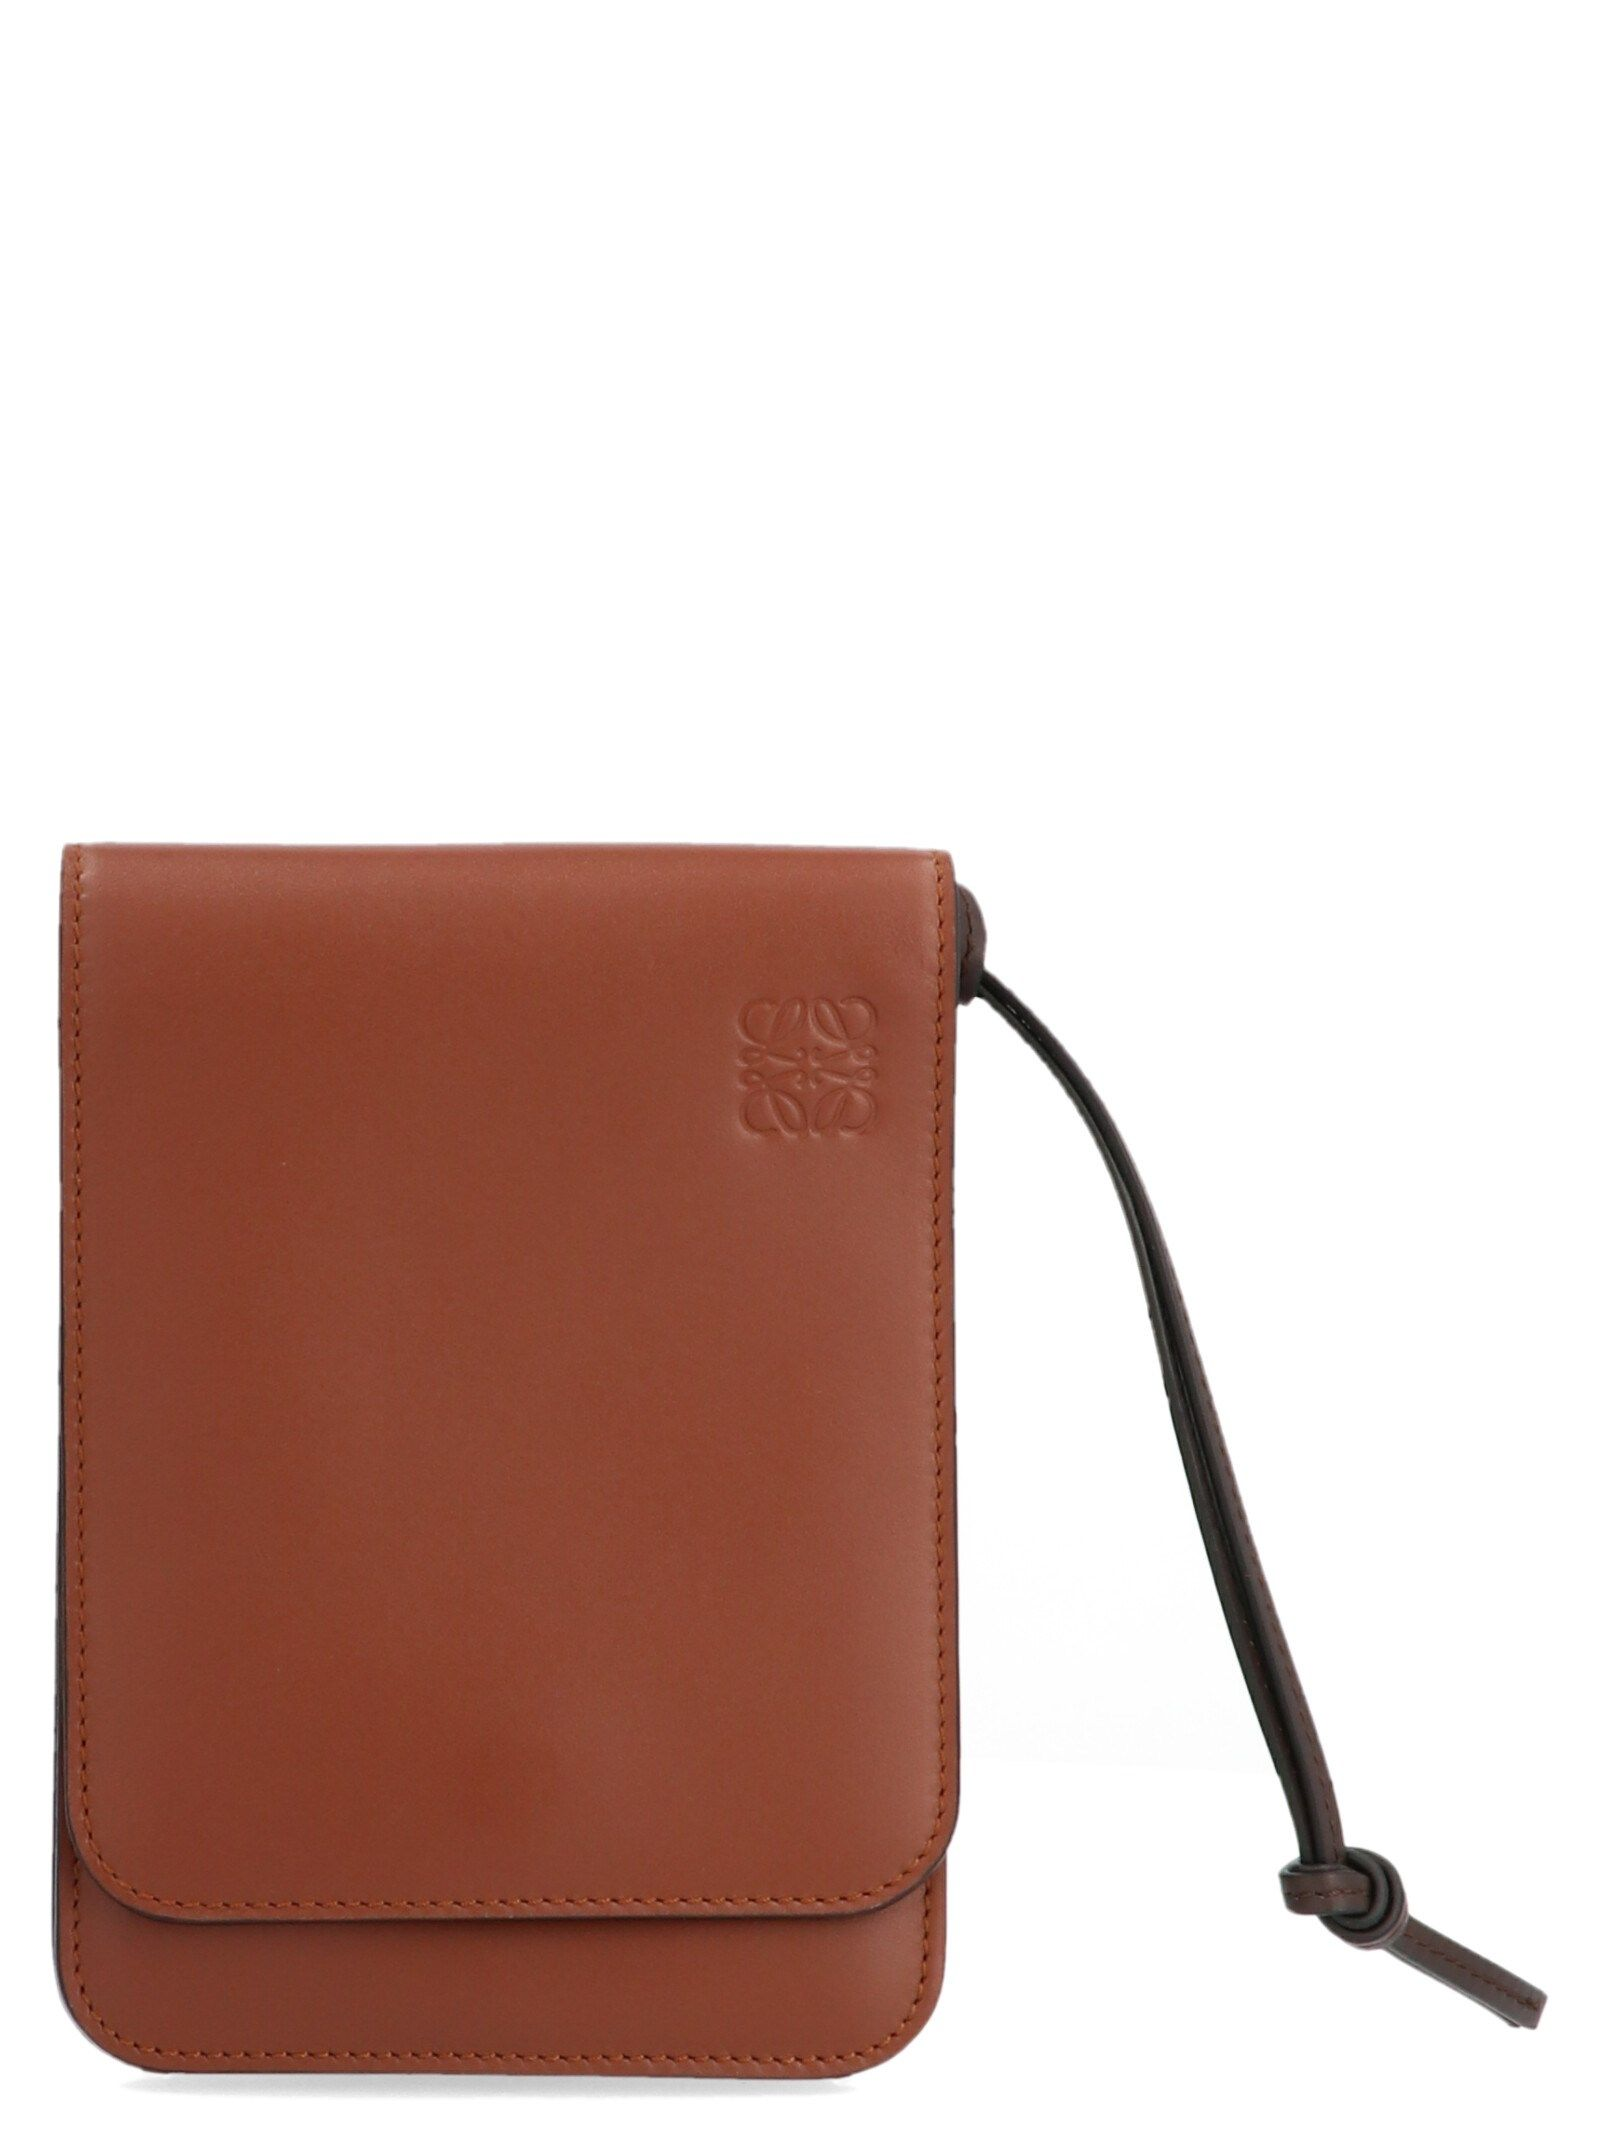 Loewe Brown Leather Messenger Bag